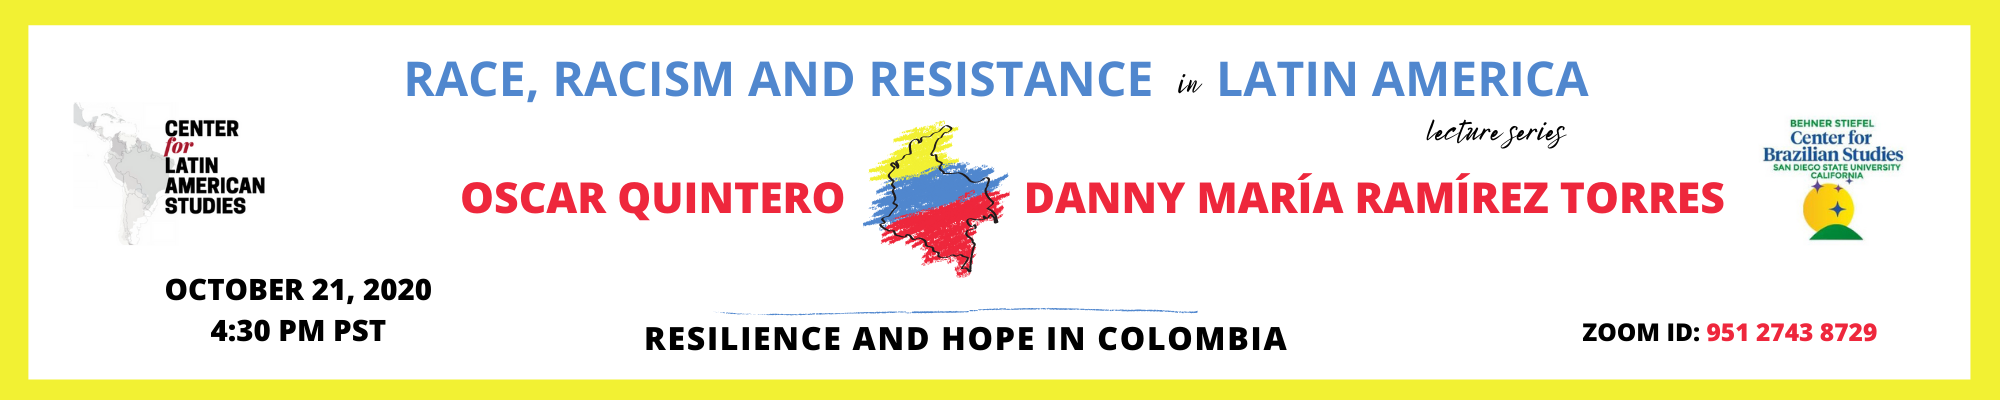 Race, Racism and Resistance in Latin American lecture series - Resilience and Hope in Colombia, Oscar Quintero and Danny María Ramírez Torres, October 21, 2020, 4:30 PM PST, Zoom ID 95127438729